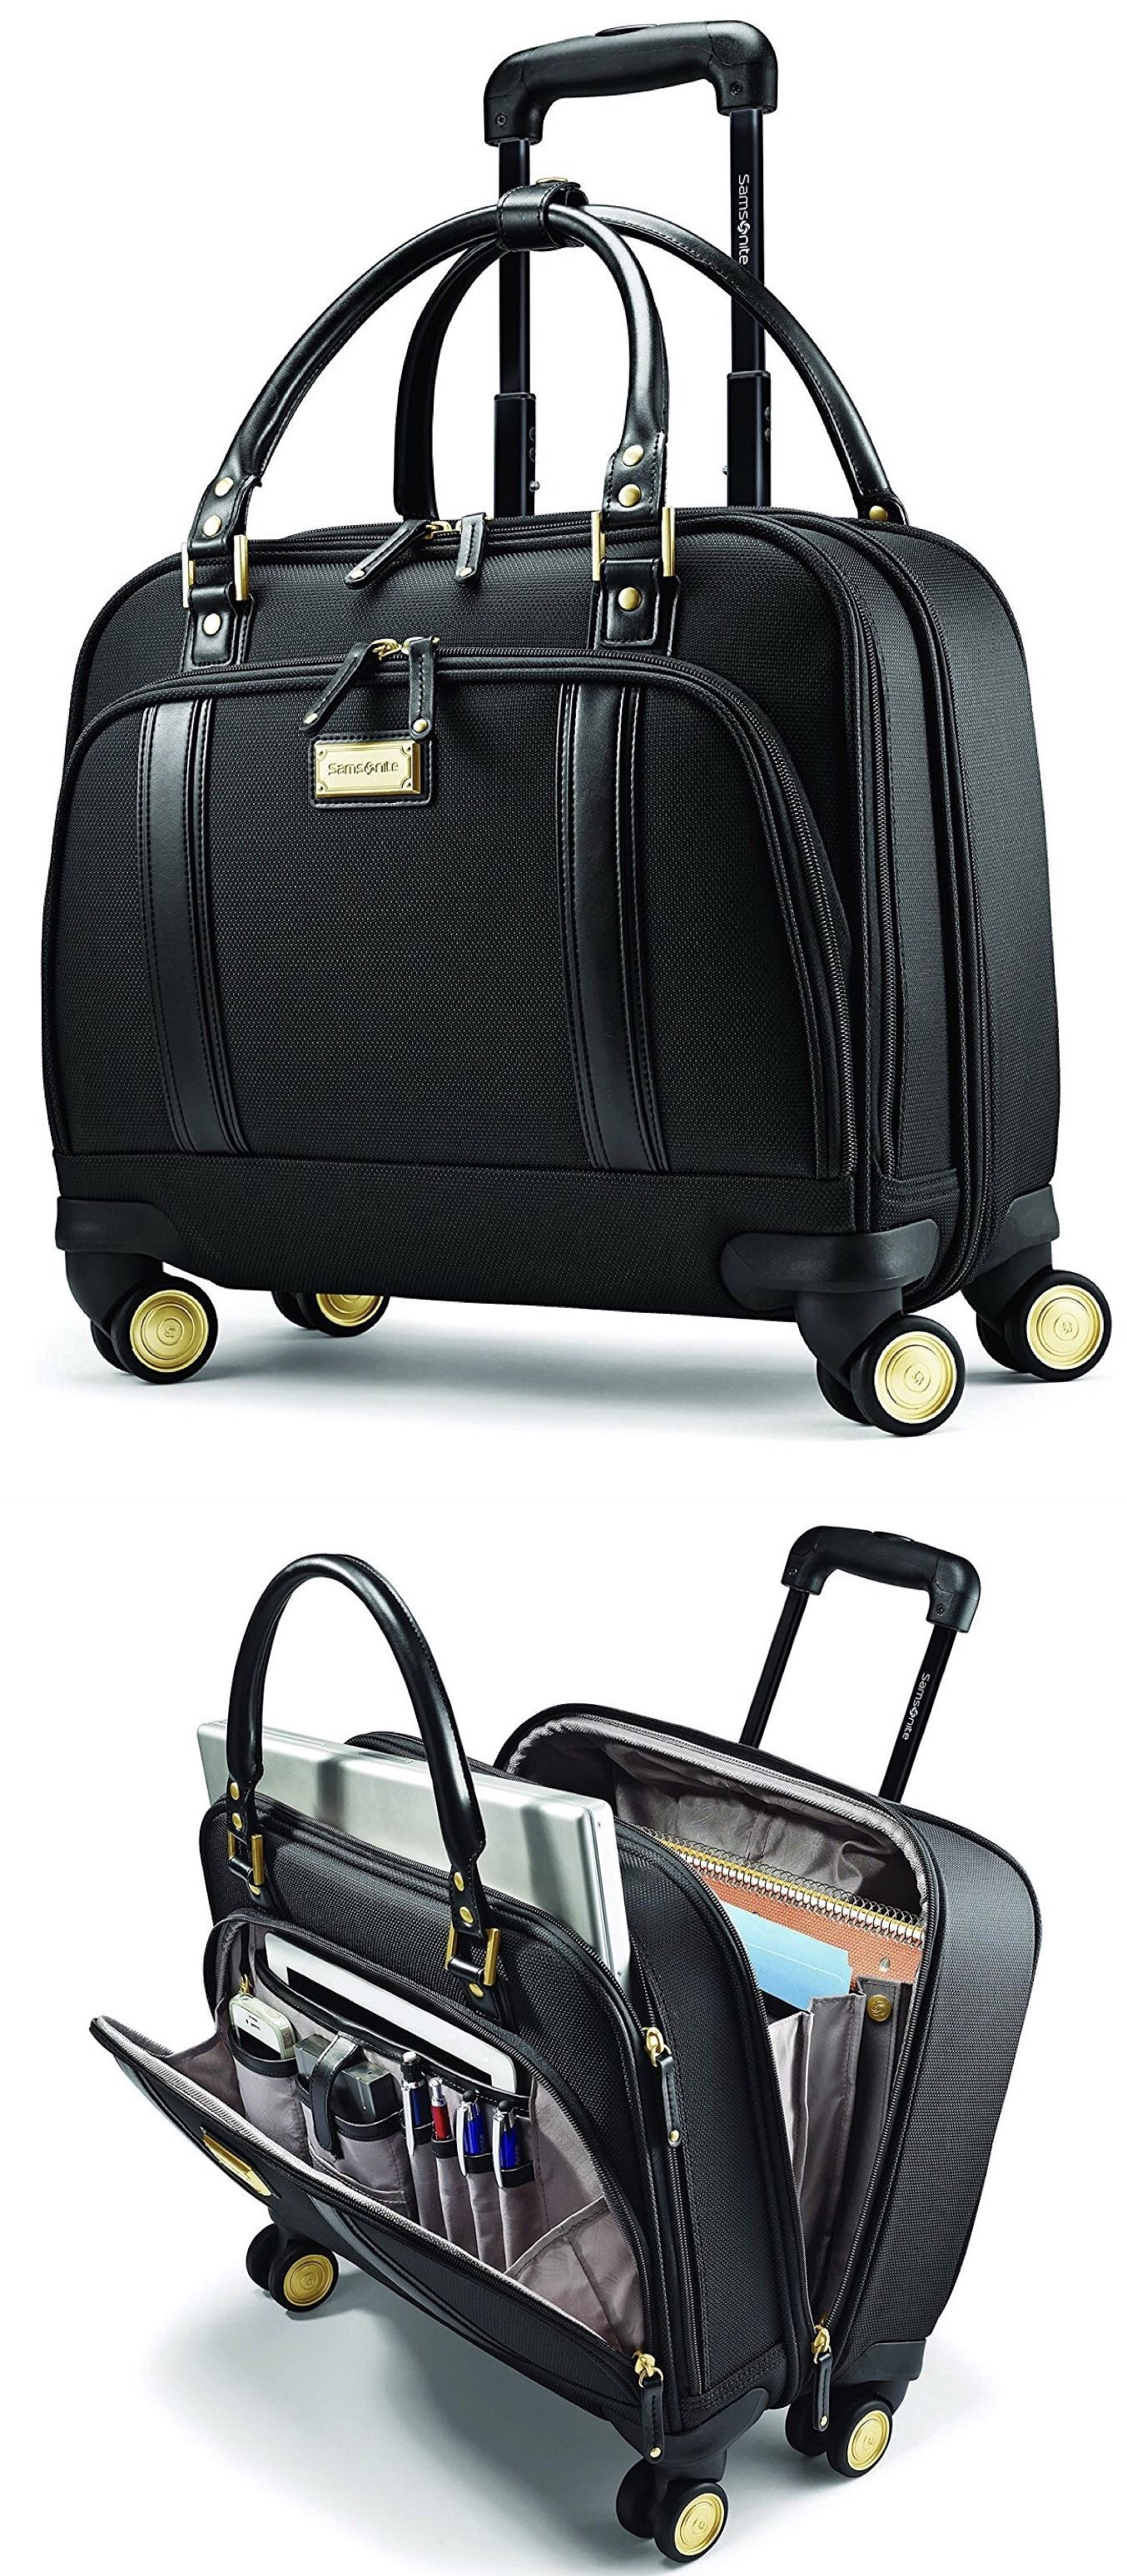 Now Samsonite Women S Spinner Mobile Office Hand Luggage Carryon Travel Work Laptop Bag Organization Cute Best Stylish Away Black Suitcase